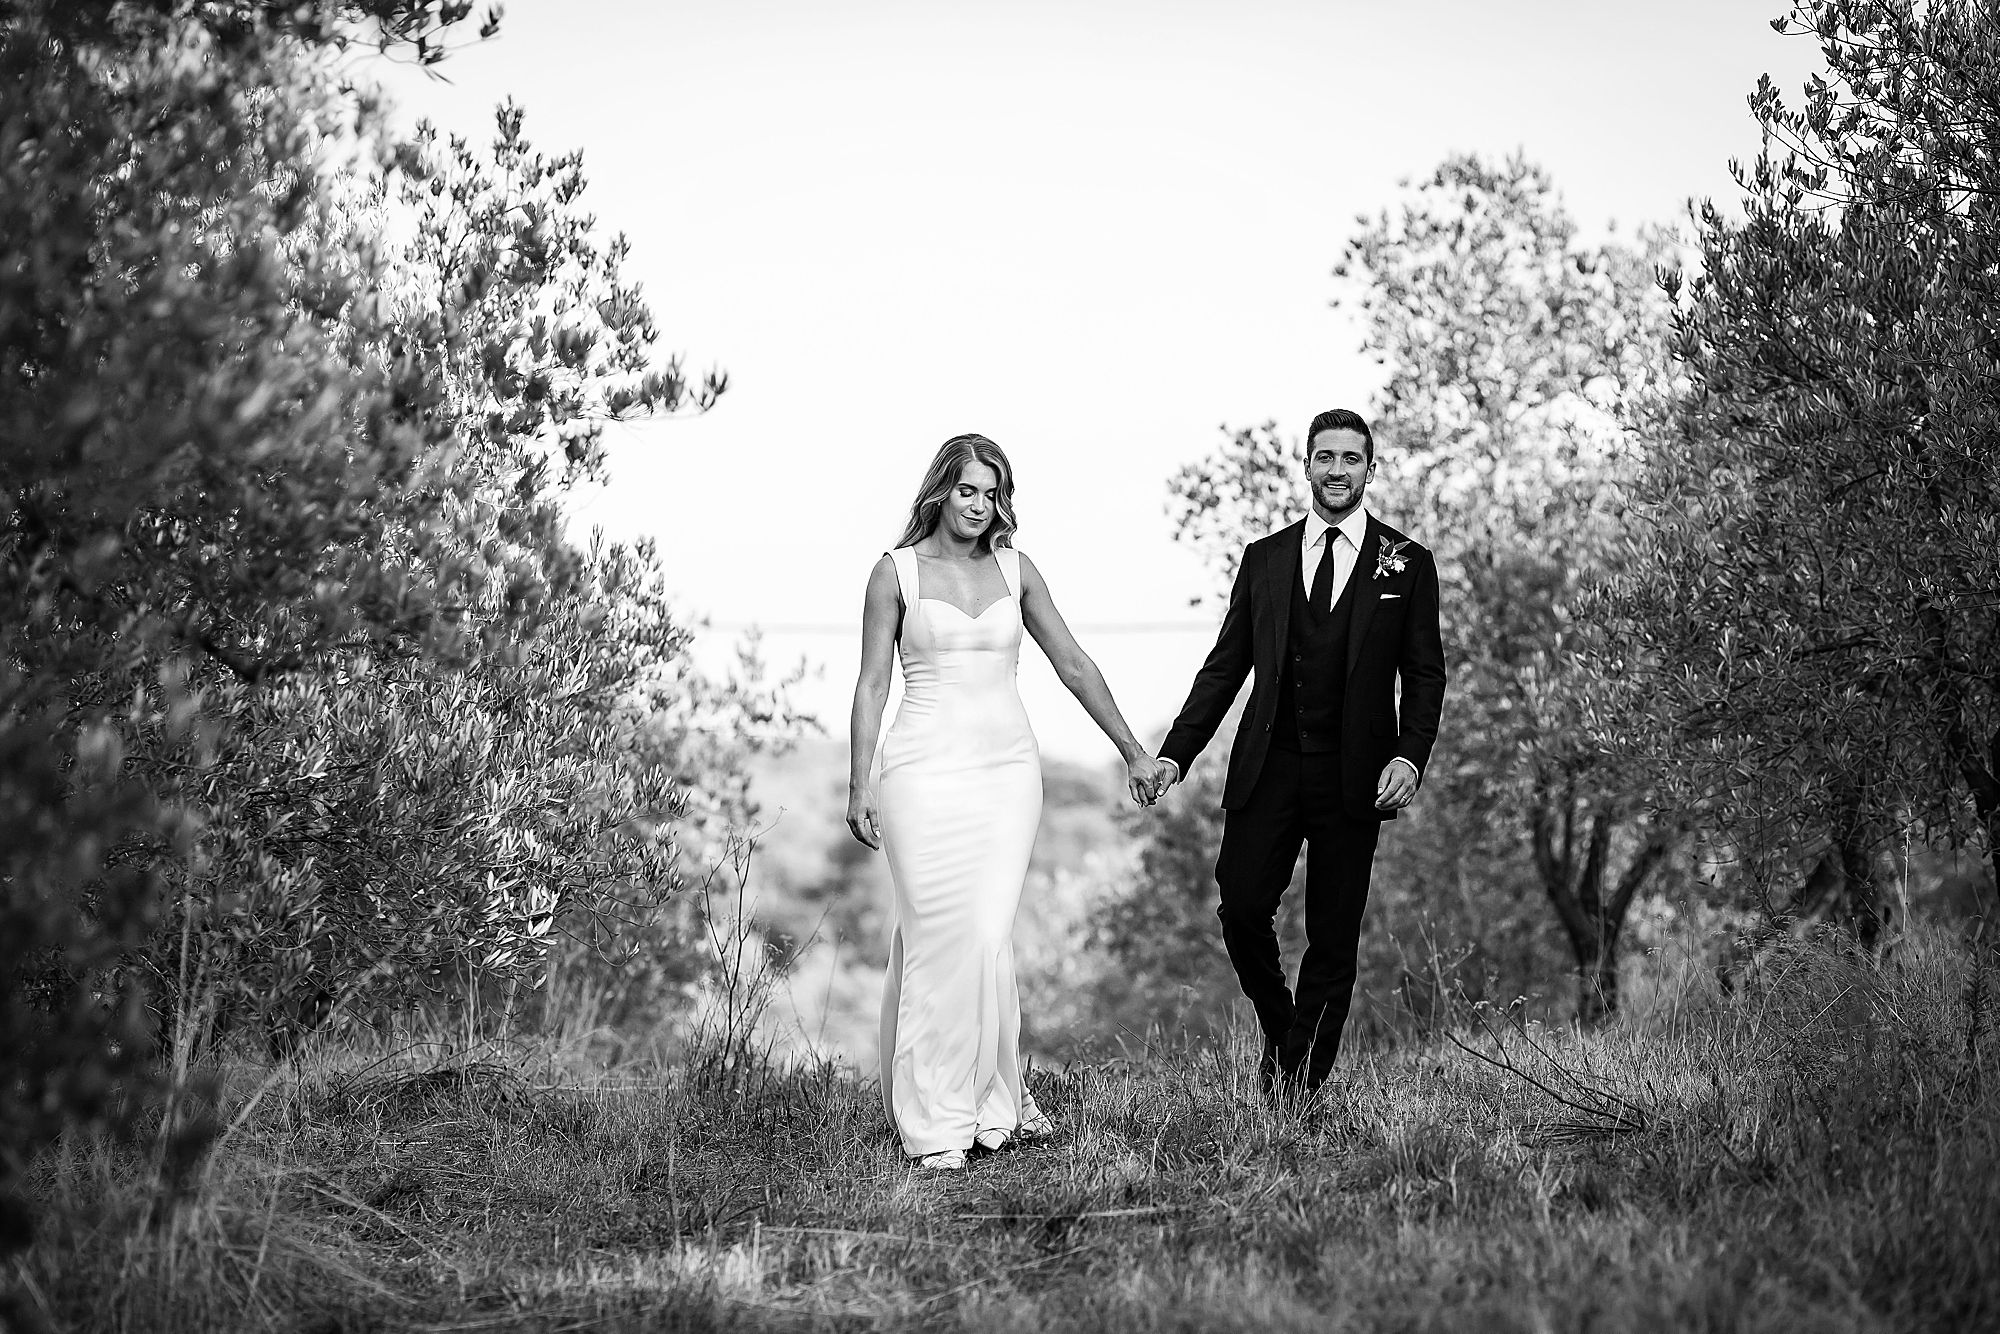 wedding walking though olive groves